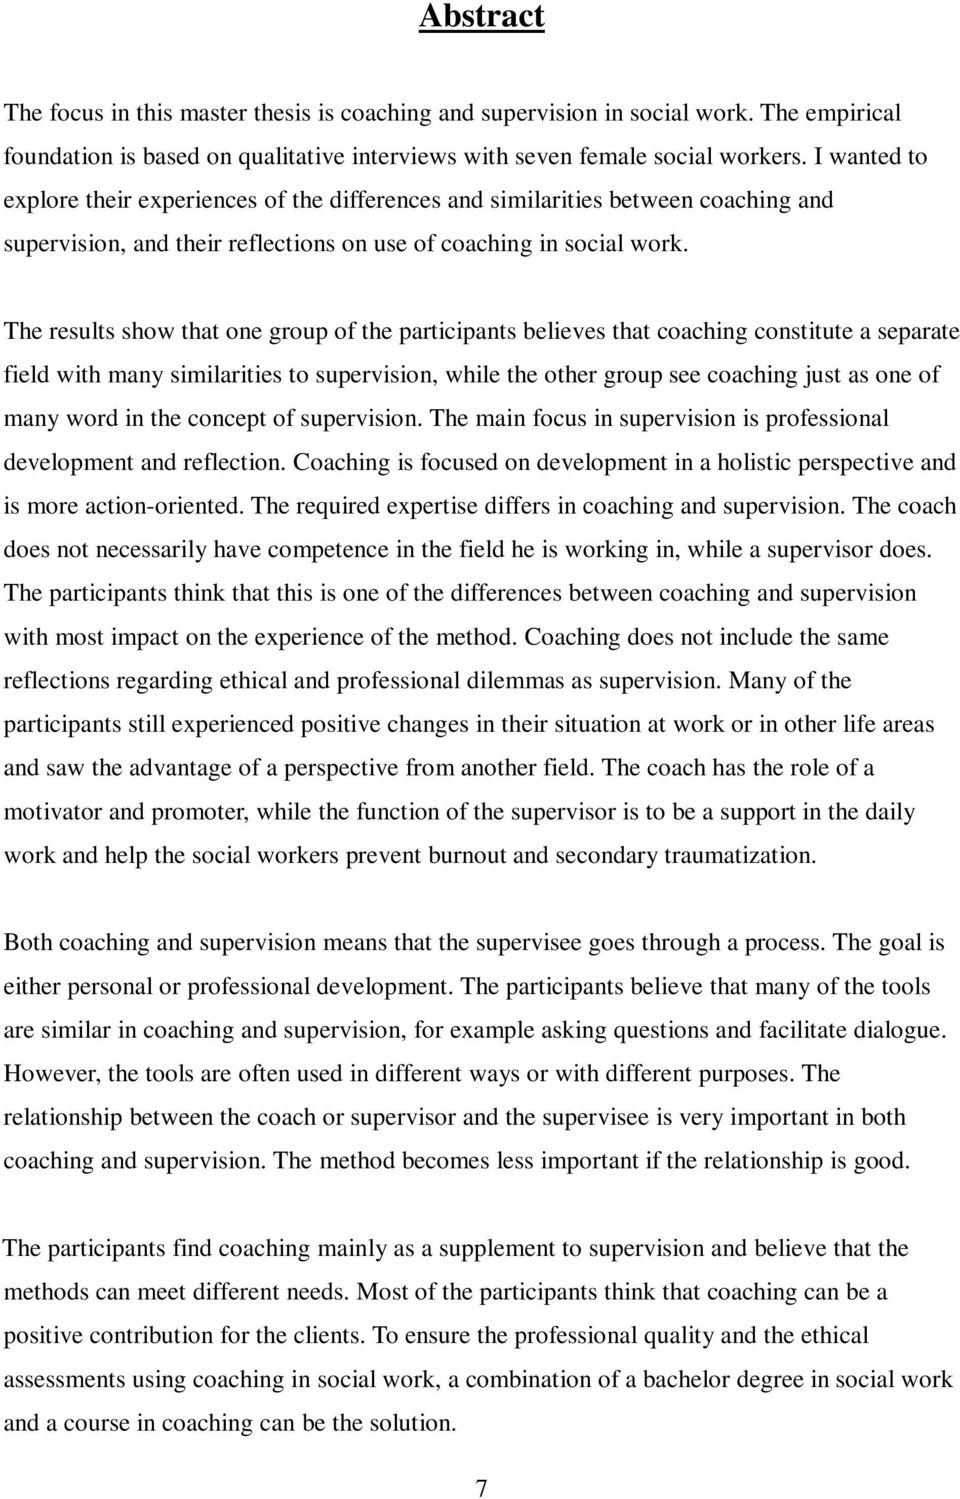 The results show that one group of the participants believes that coaching constitute a separate field with many similarities to supervision, while the other group see coaching just as one of many